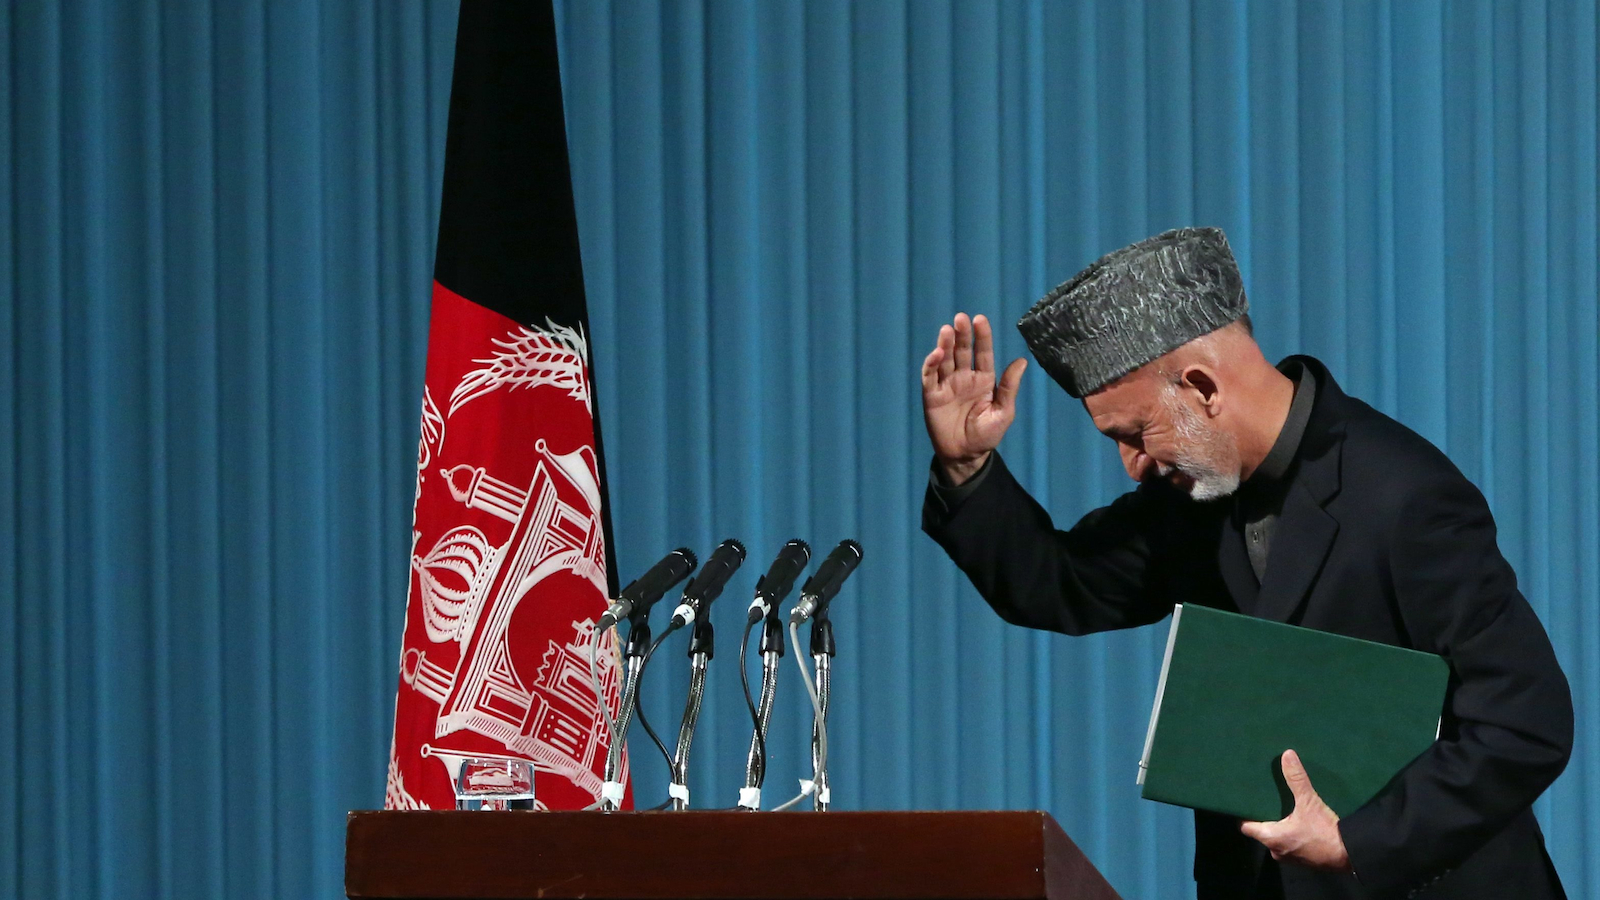 Afghan President Hamid Karzai leaves after a cultural event in Kabul, Afghanistan on Thursday, May 15, 2014. (Massoud Hossaini/AP)